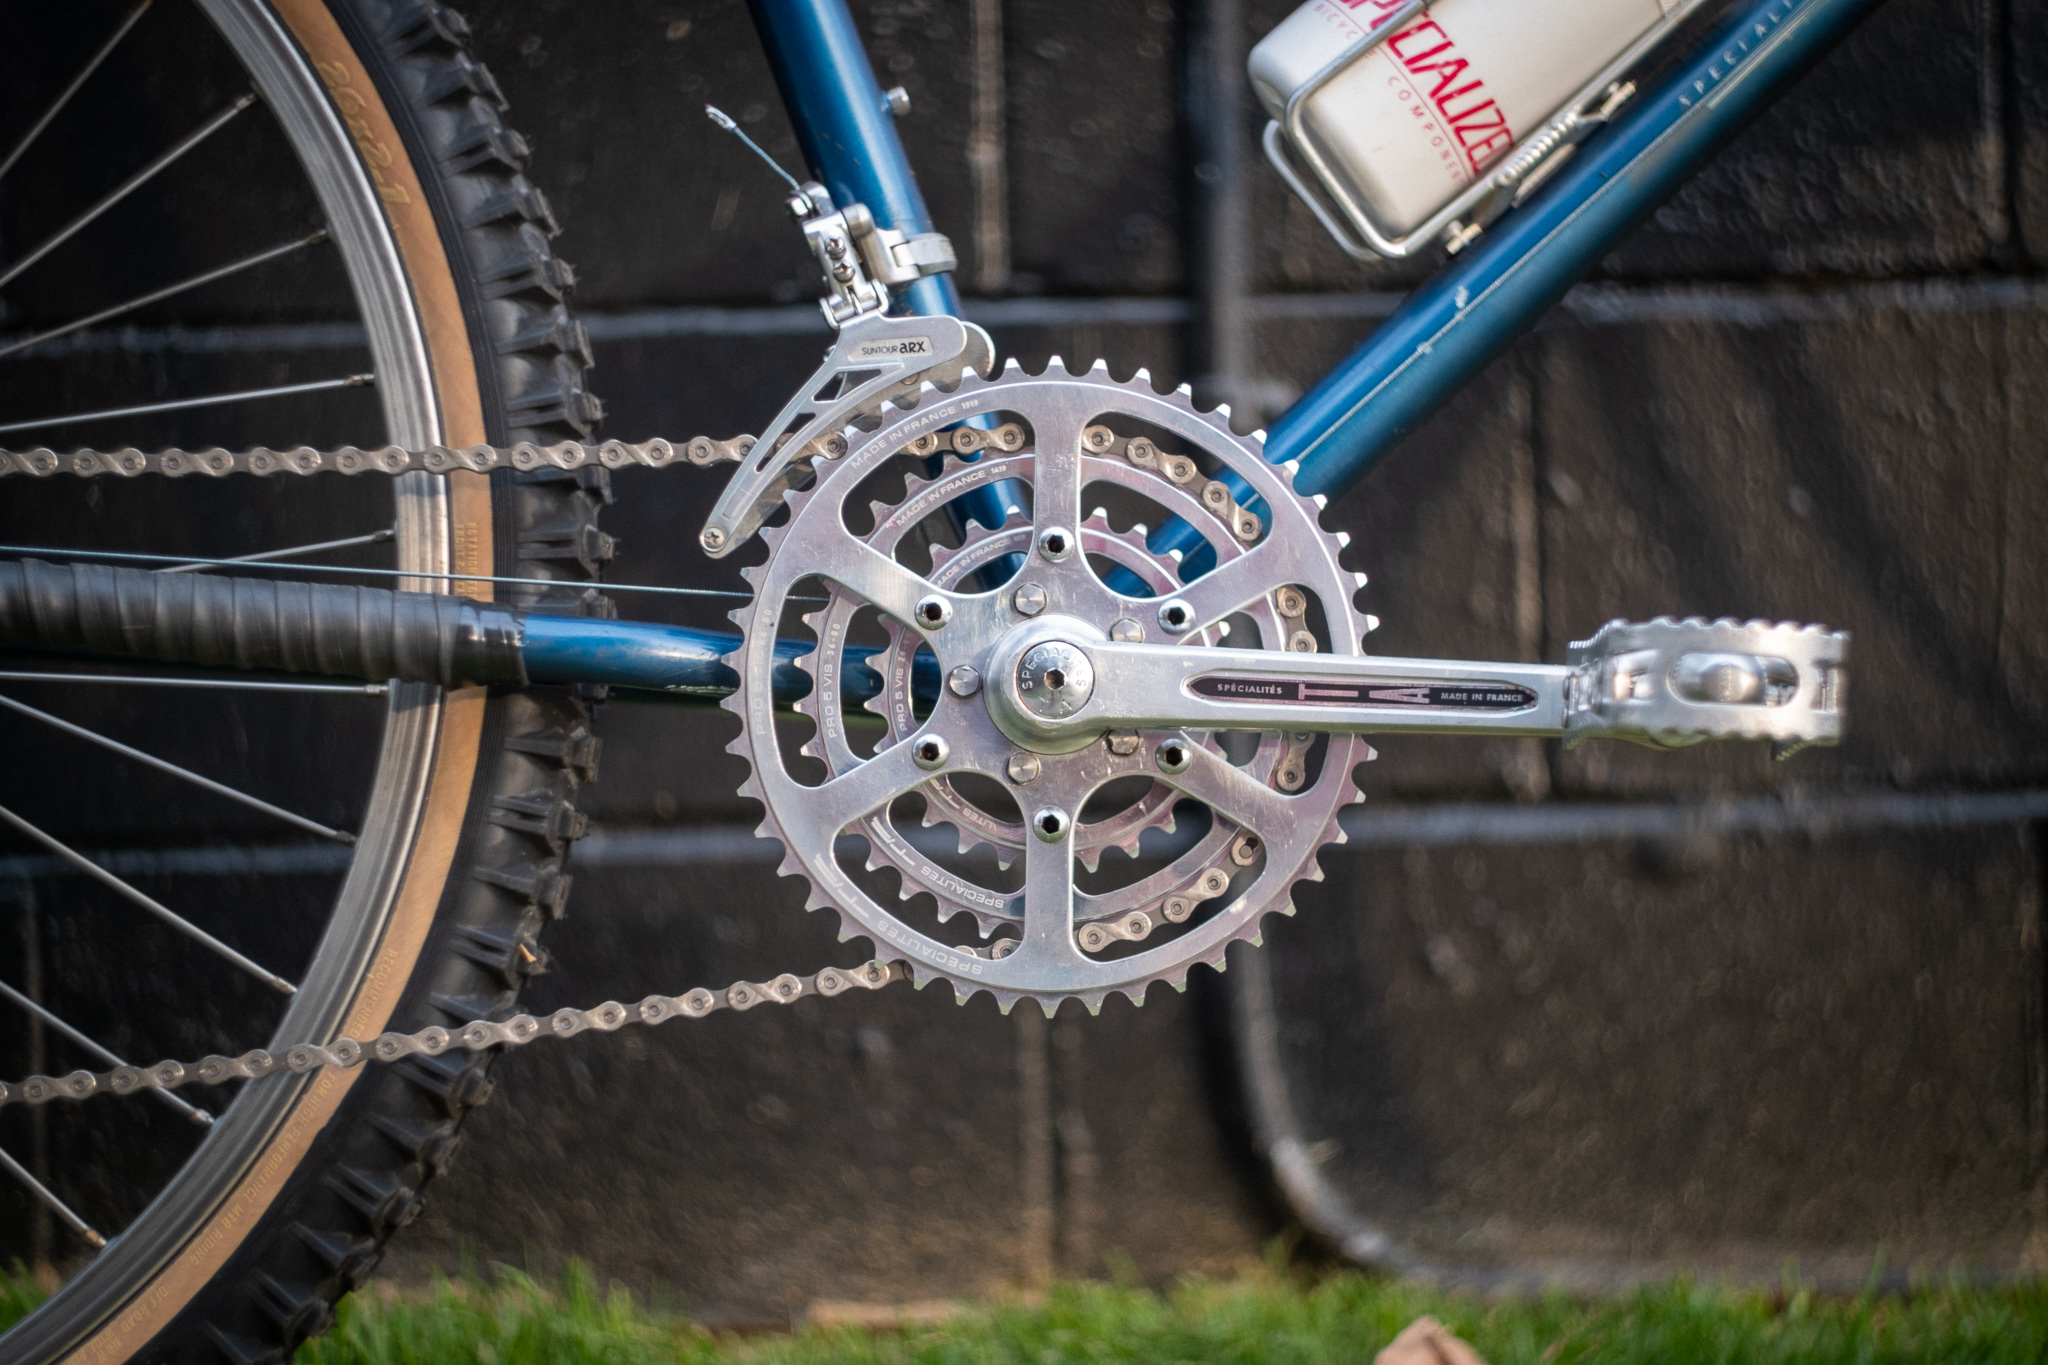 1981 Specialized Stumpjumper chainring detail